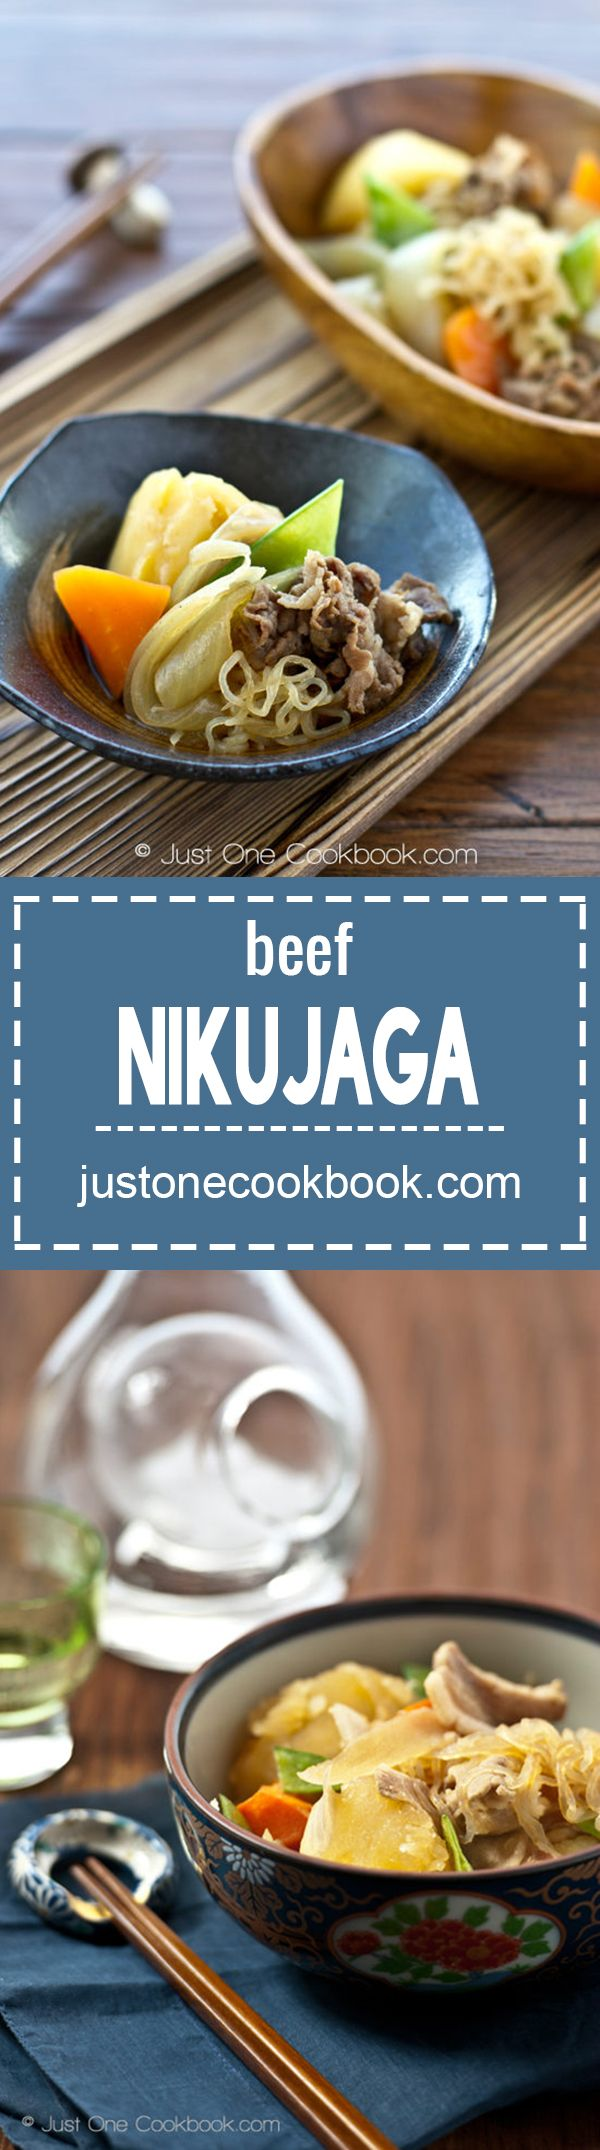 Nikujaga (肉じゃが) | Easy Japanese Recipes at JustOneCookbook.com